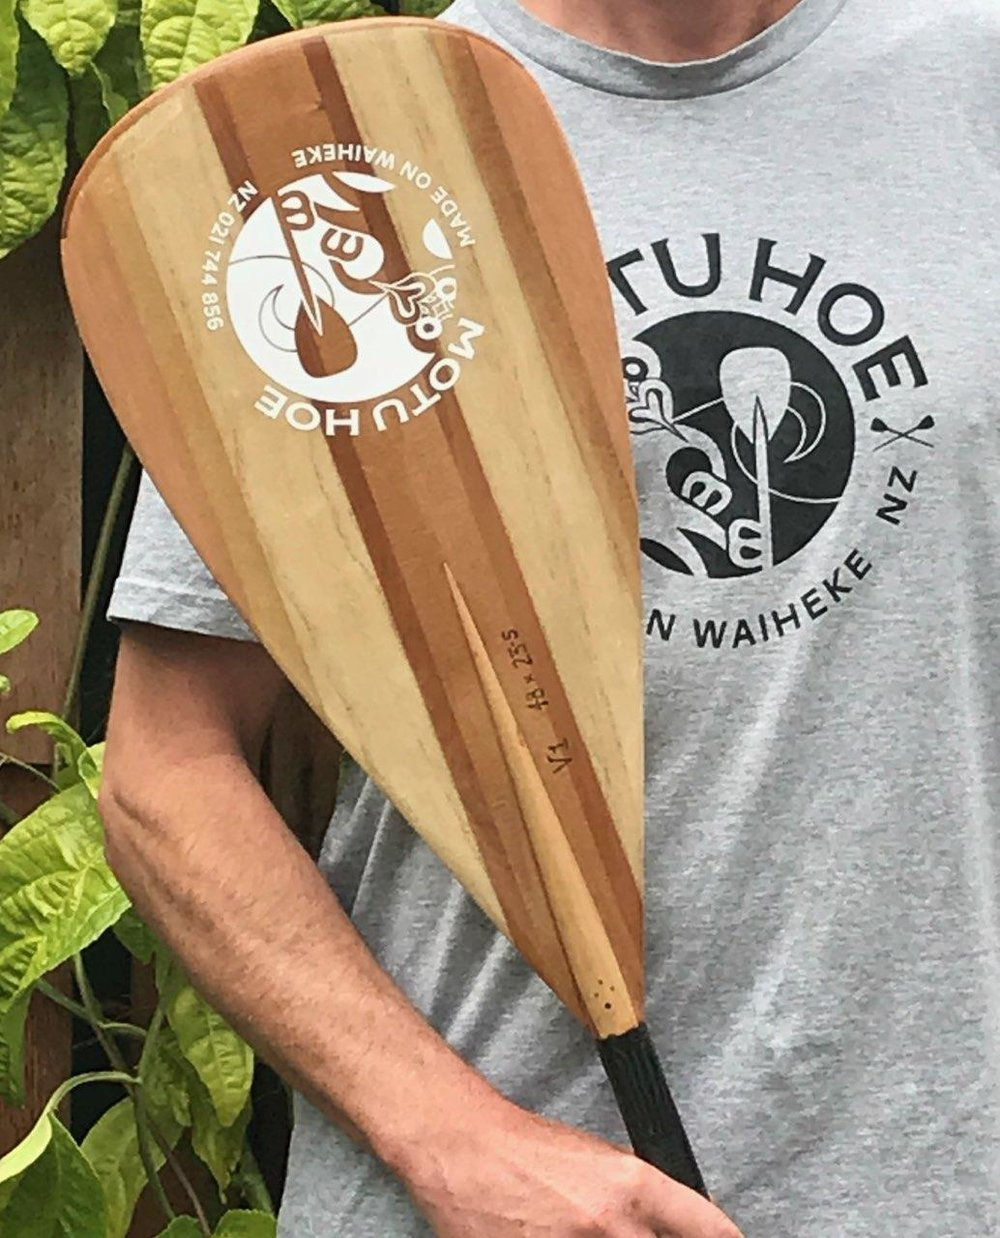 Motu Hoe paddle custom made by Tree Essence FurnitureMakers www.treeessence.co.nz